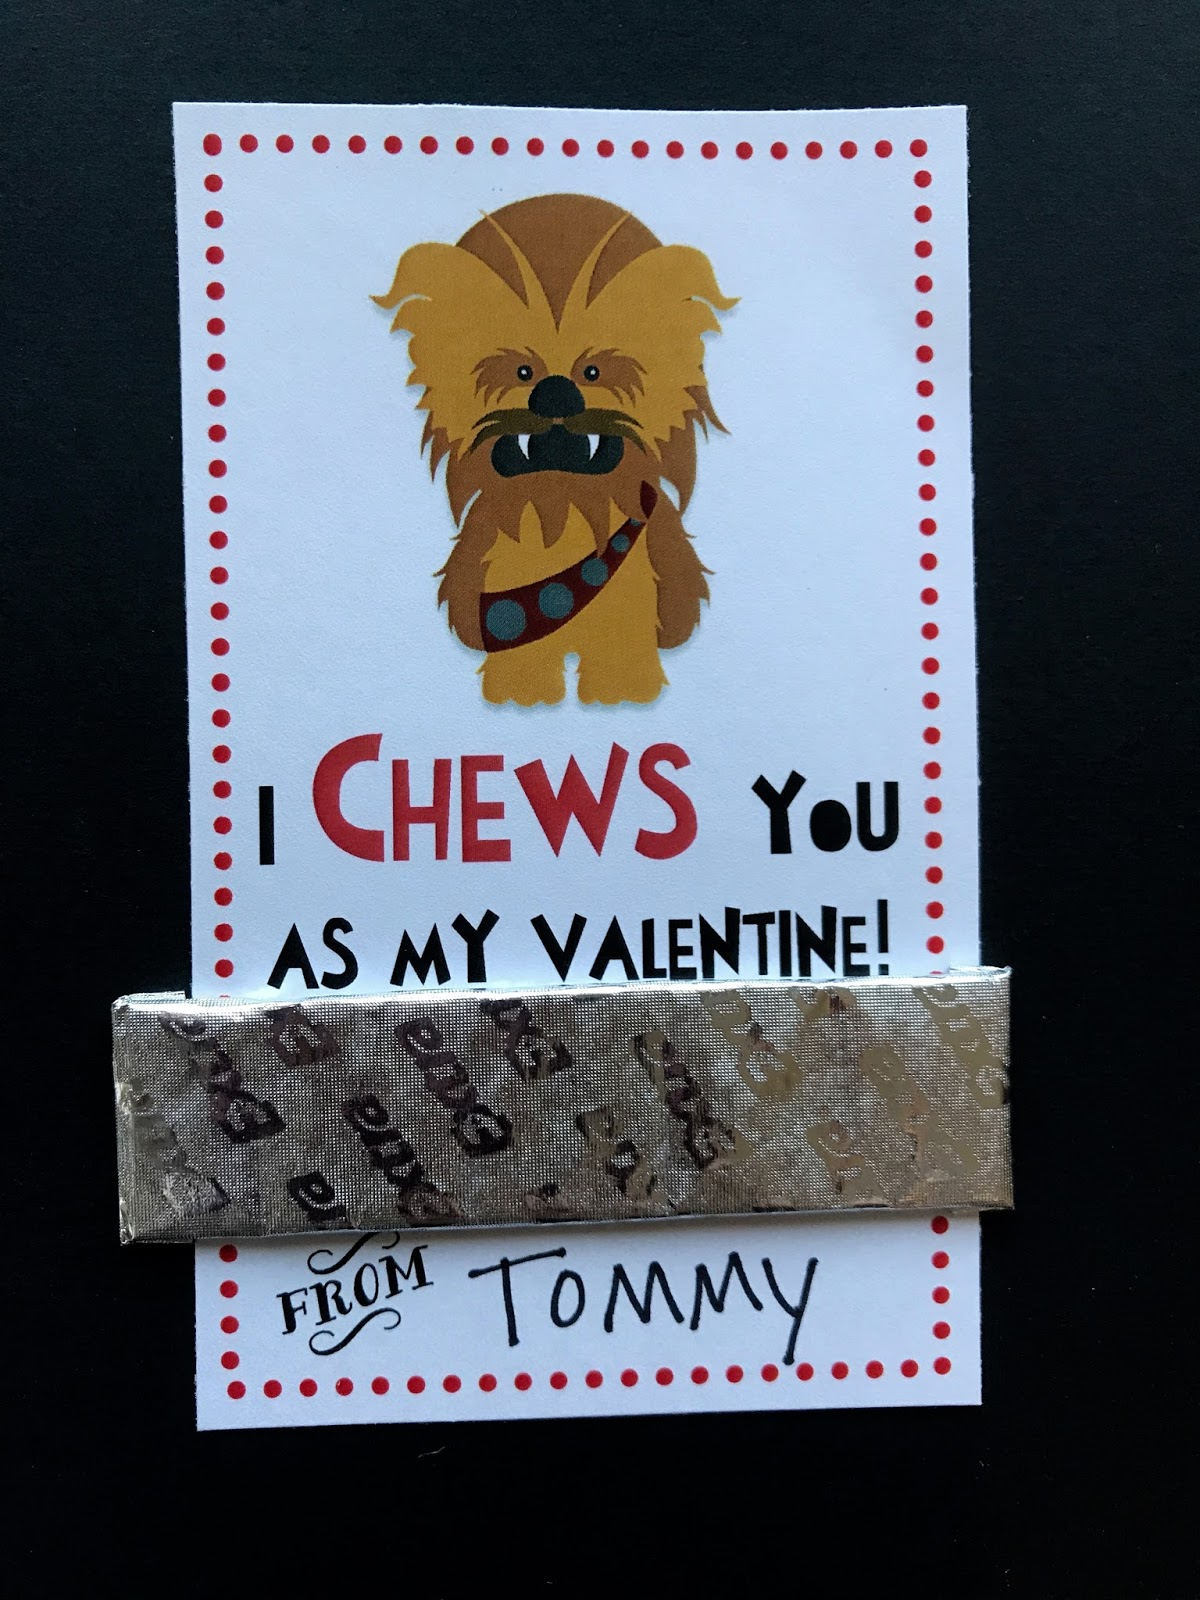 A CHEWBACCA Valentine For All You CHEWY Lovers!